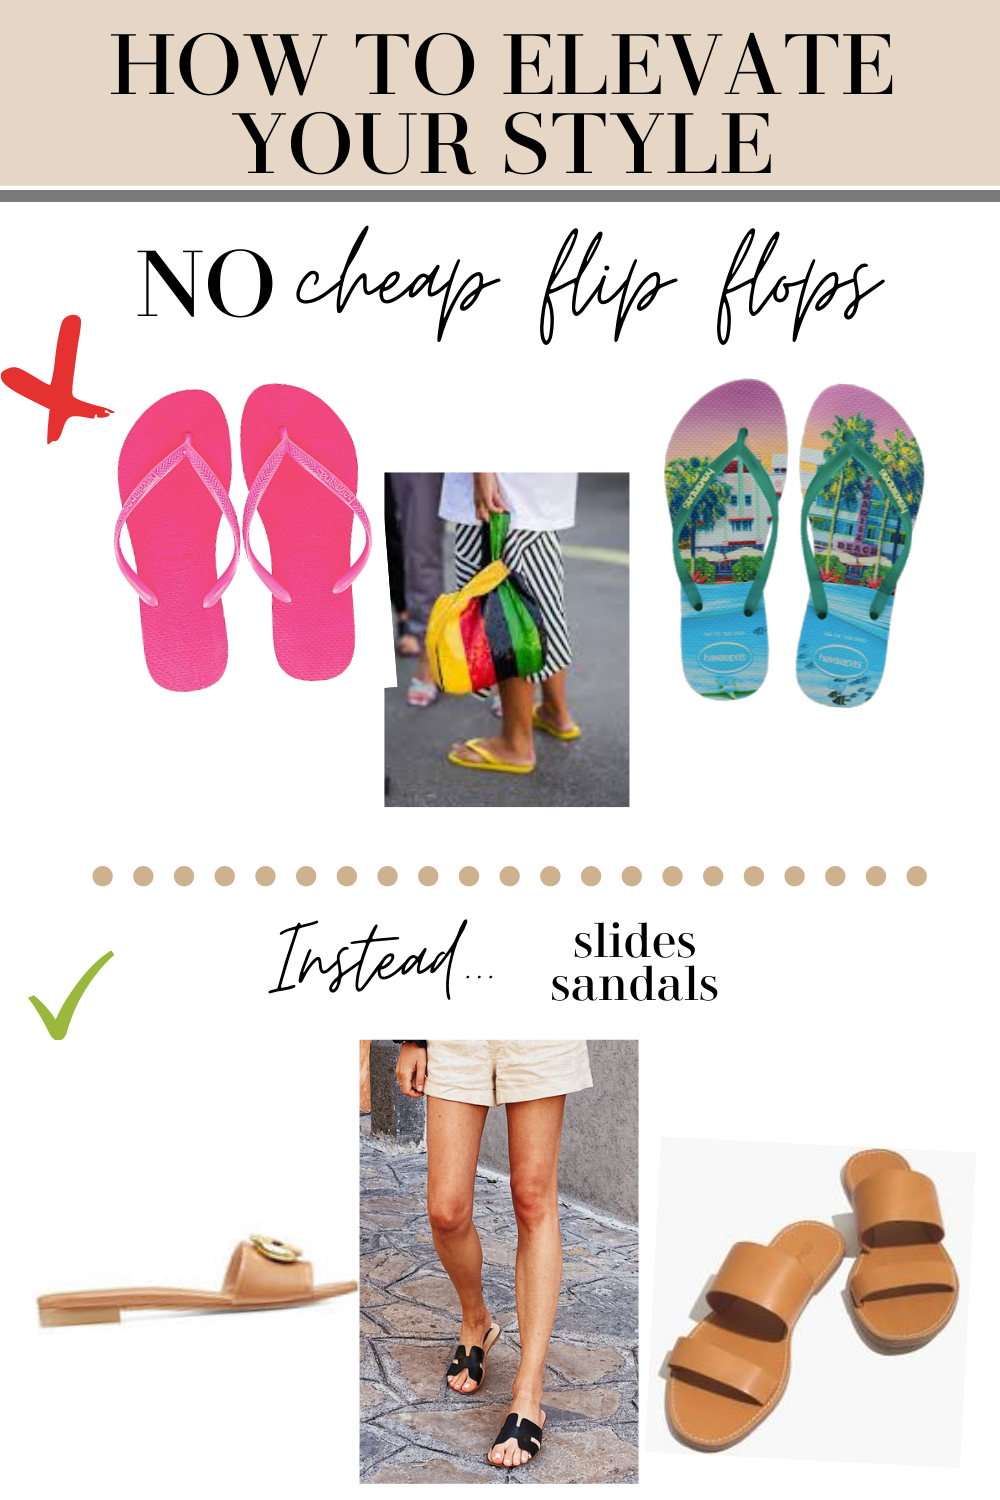 elevate your style with sandals